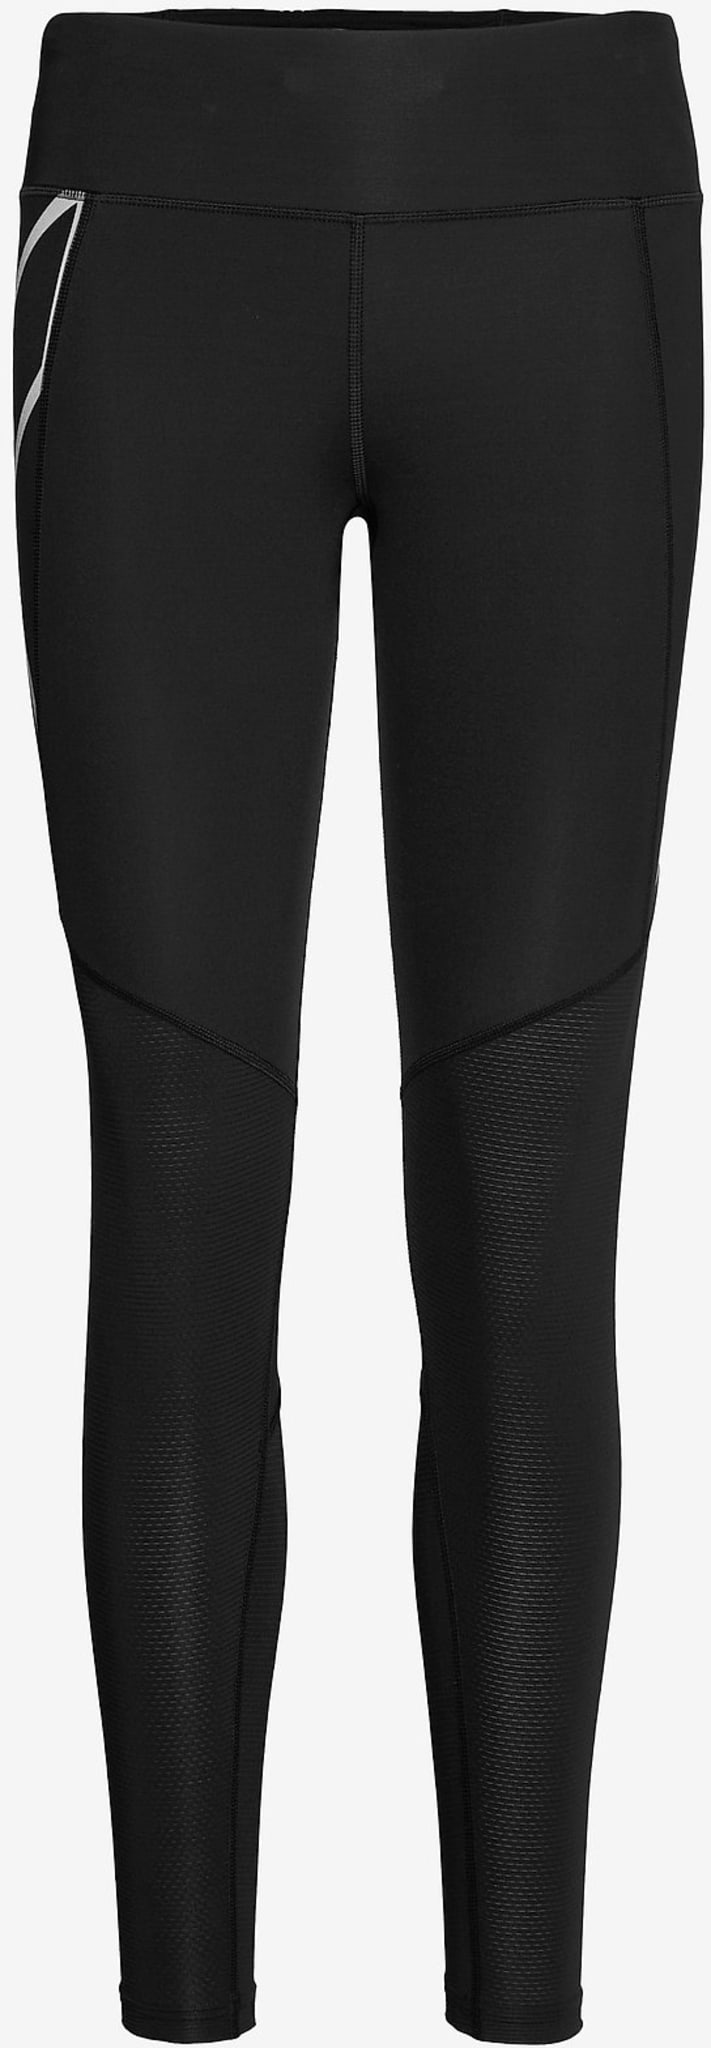 Aero Vent Mid-Rise Compression Tights W